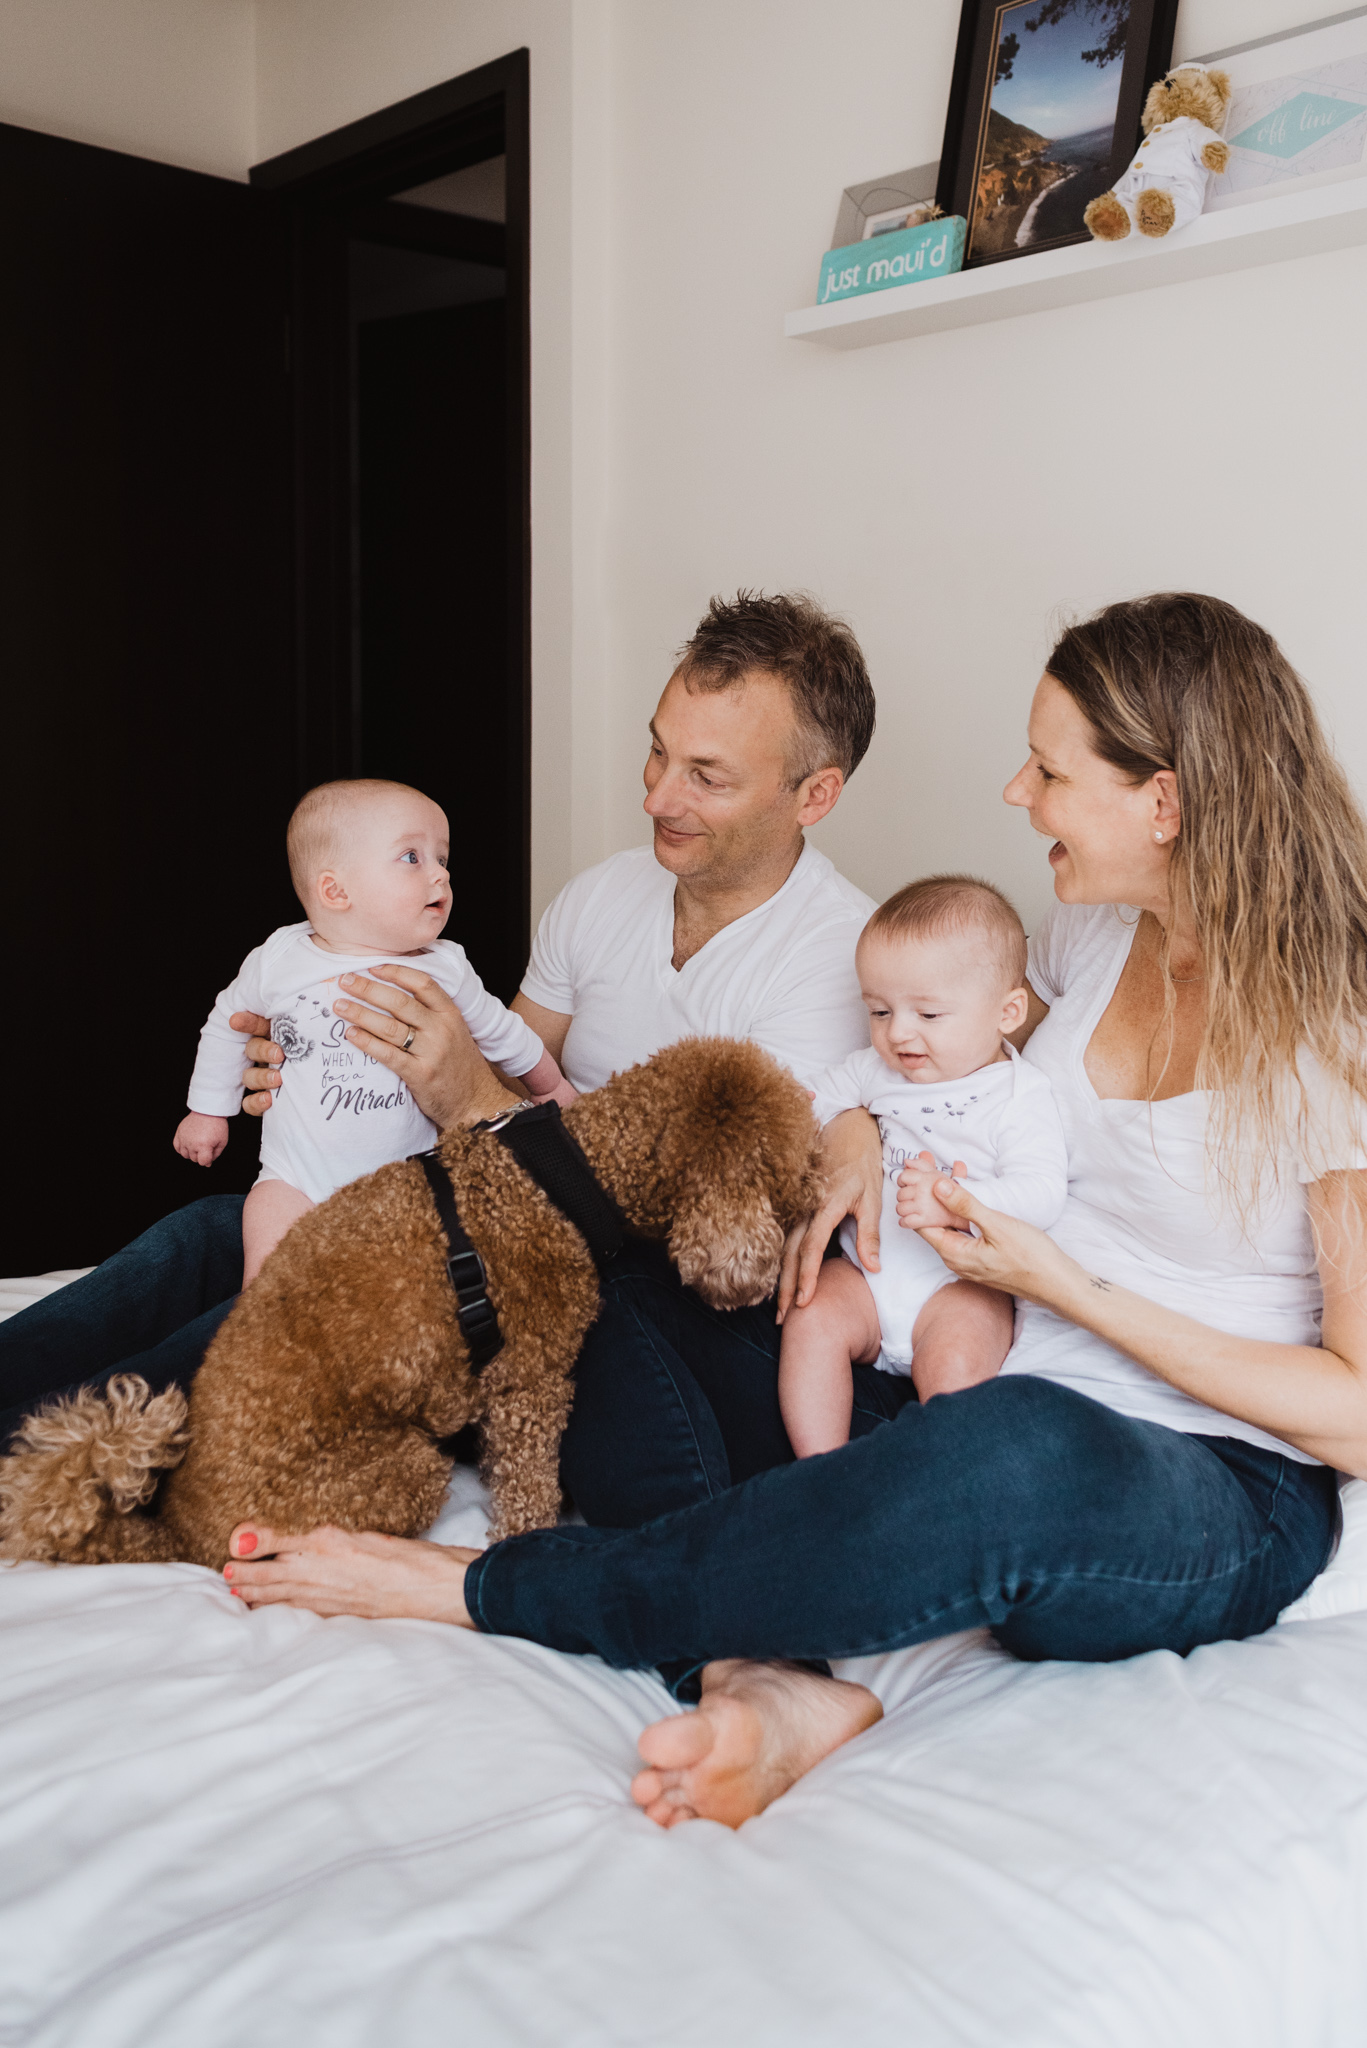 0425 - Lockington Family 4months May 2019.jpg